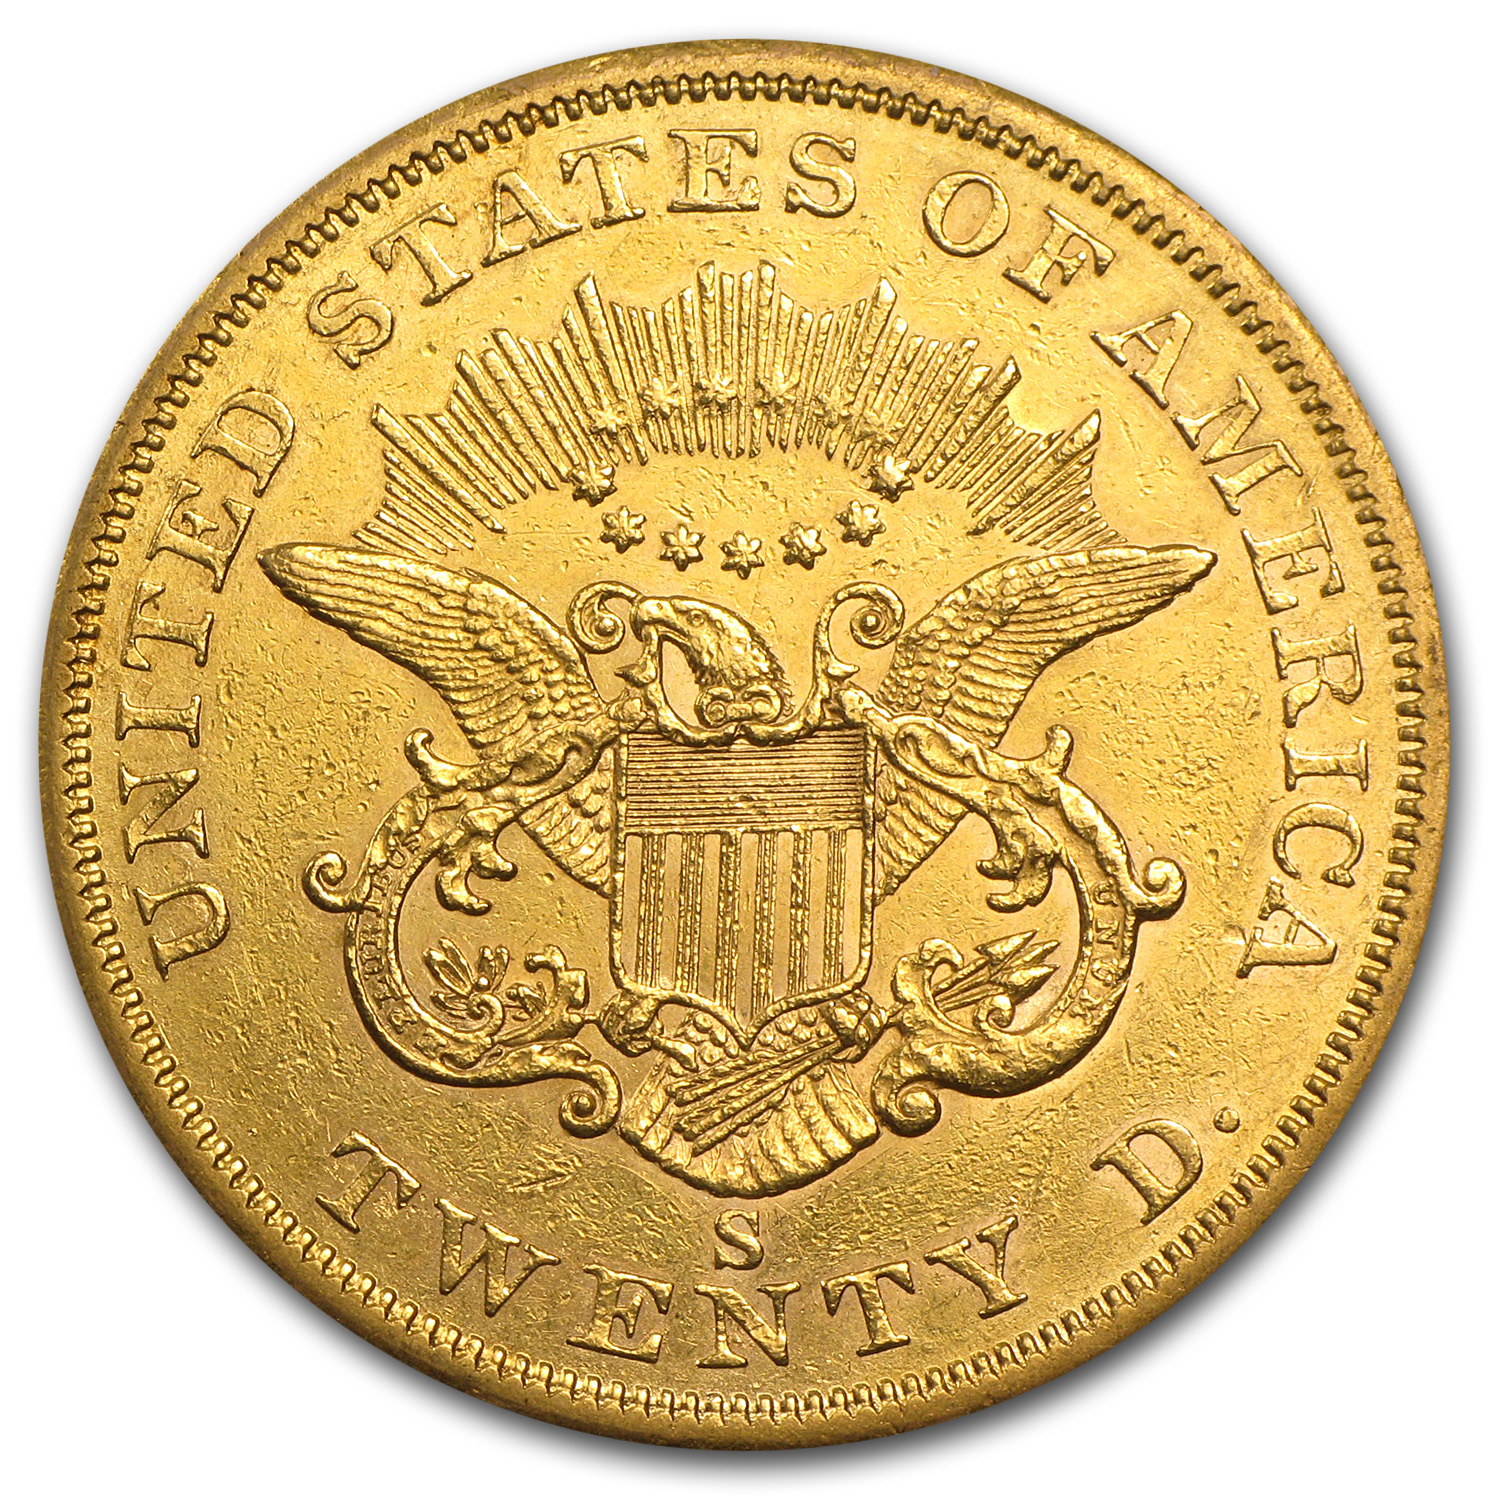 1857-S $20 Liberty Gold Double Eagle - AU Details - (Cleaned)